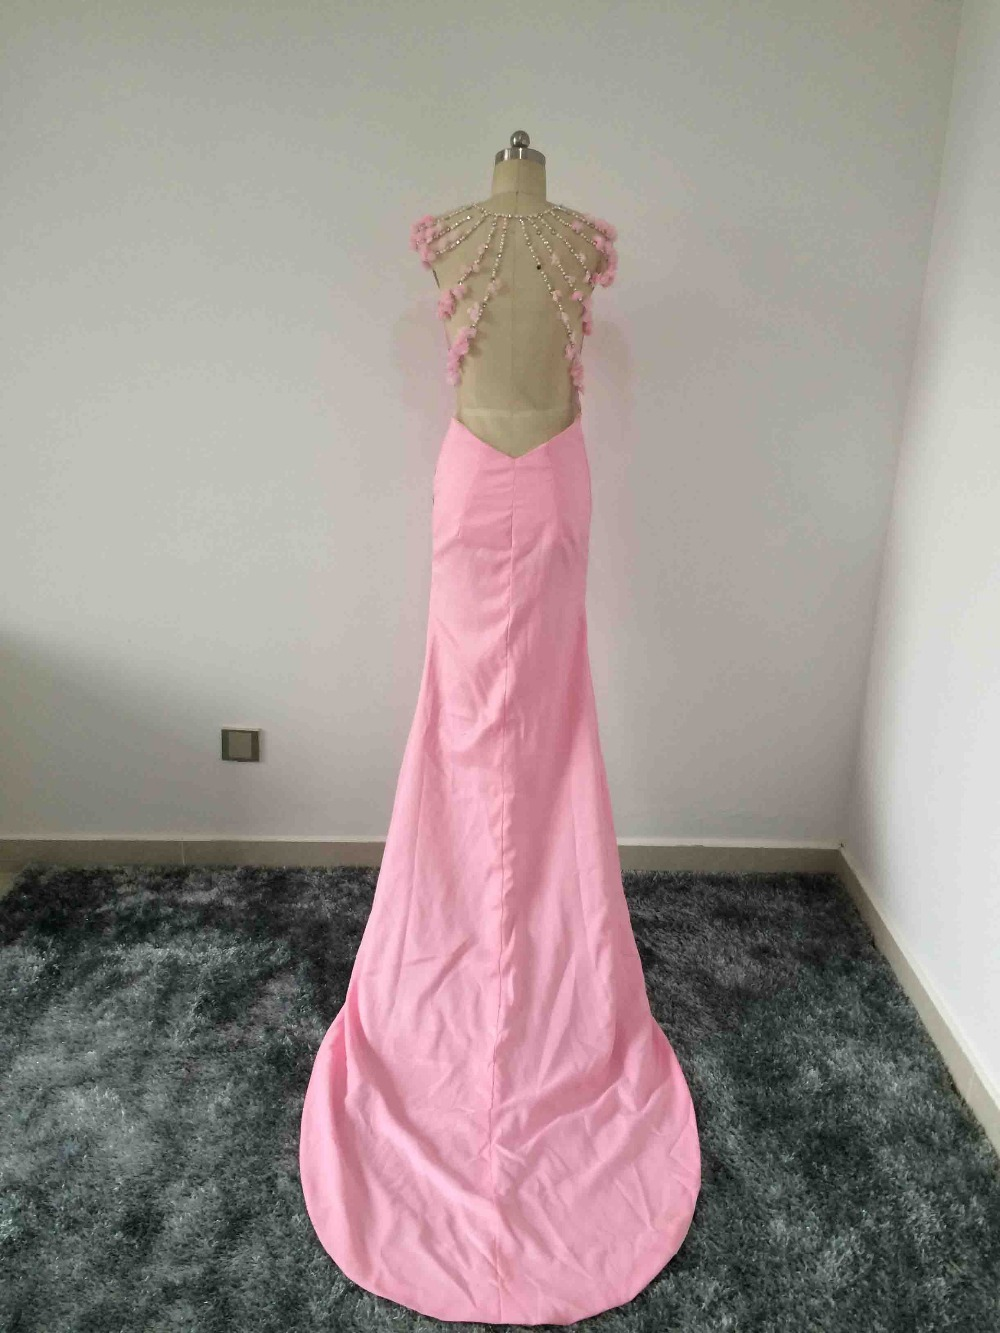 Solovedress Sexy Beadeds and flowers Evening Dresses Prom Dress with Trian Stain Mermaid Formal Gown vestido de festa longo RP03